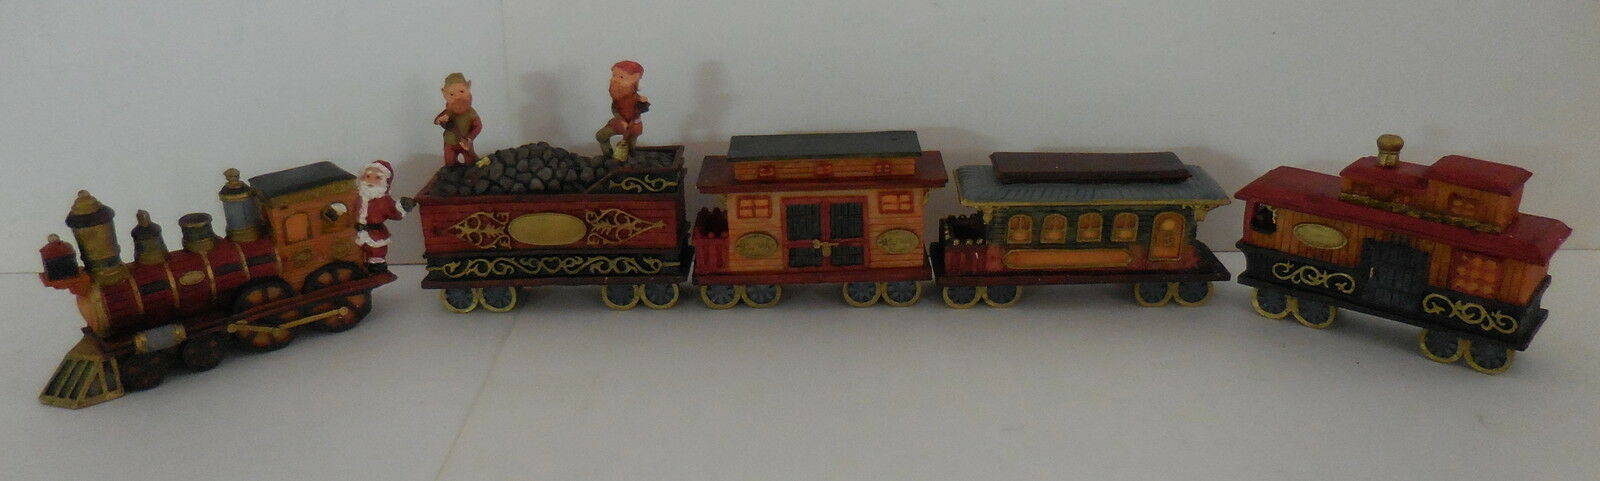 Holiday Santa Express Train 1995 by World Bazaars - 5 Piece - New with Boxes